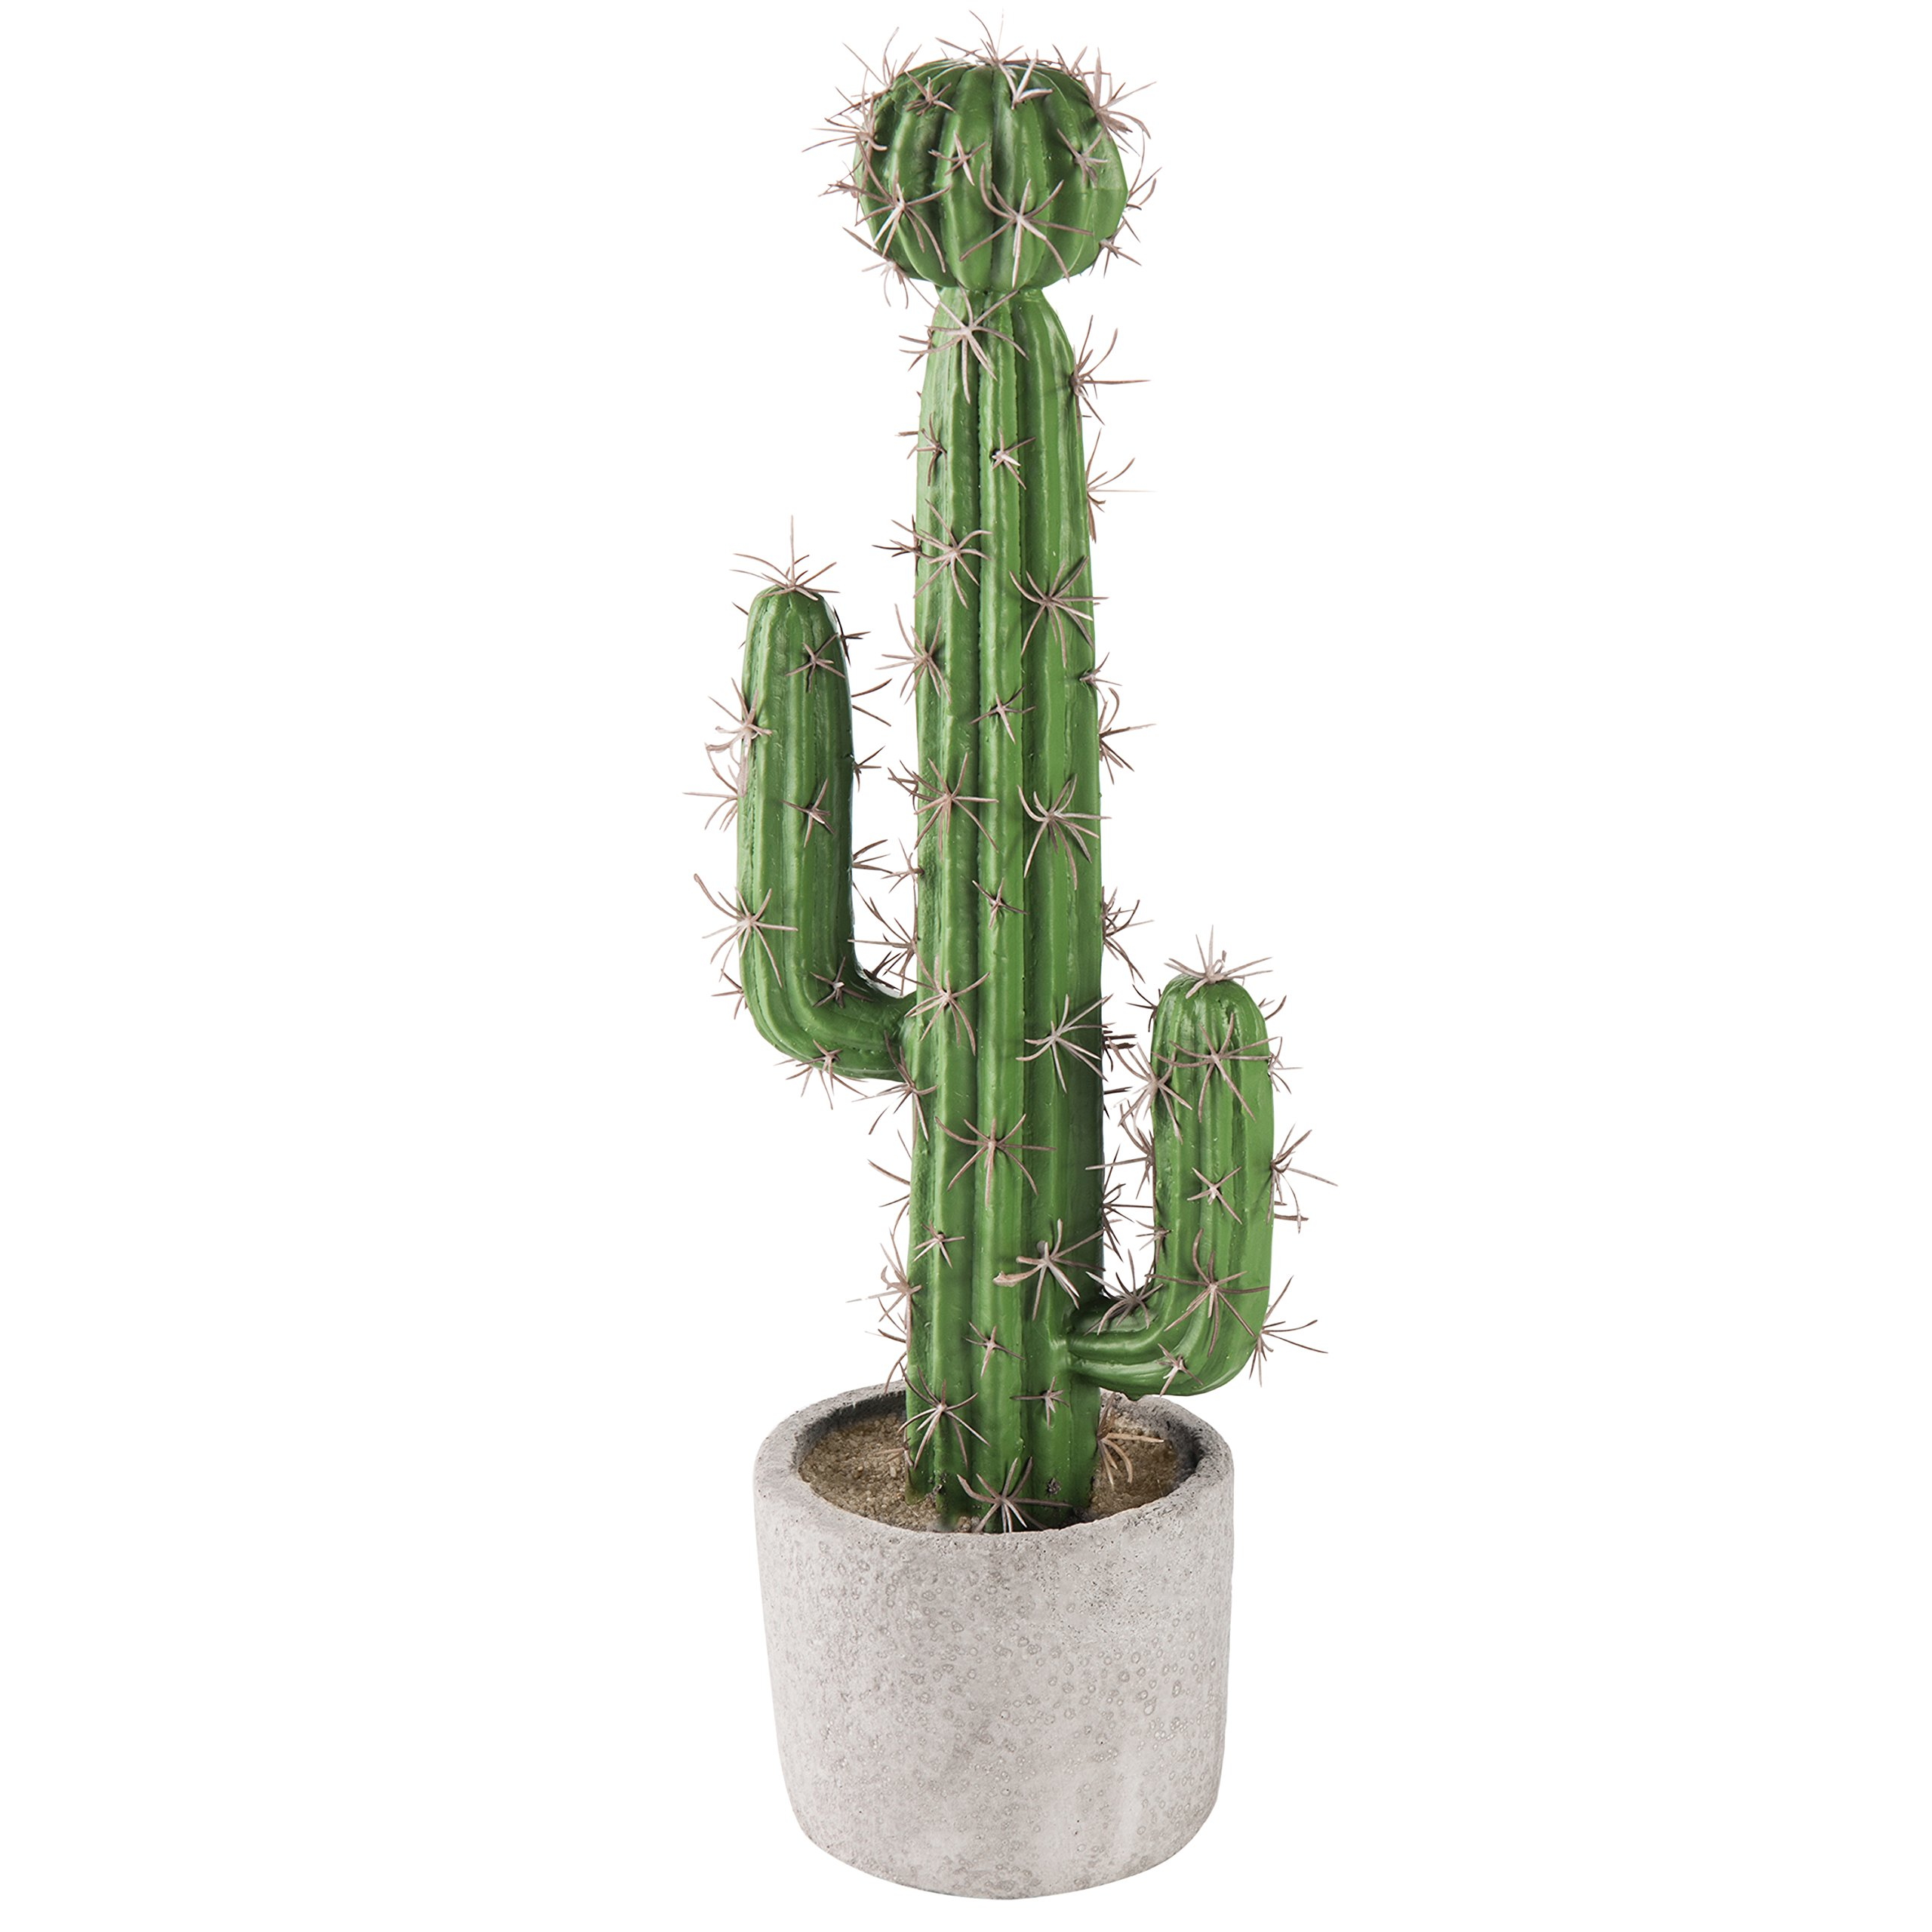 MyGift 13-inch Artificial Saguaro Cactus in Cement Planter Pot